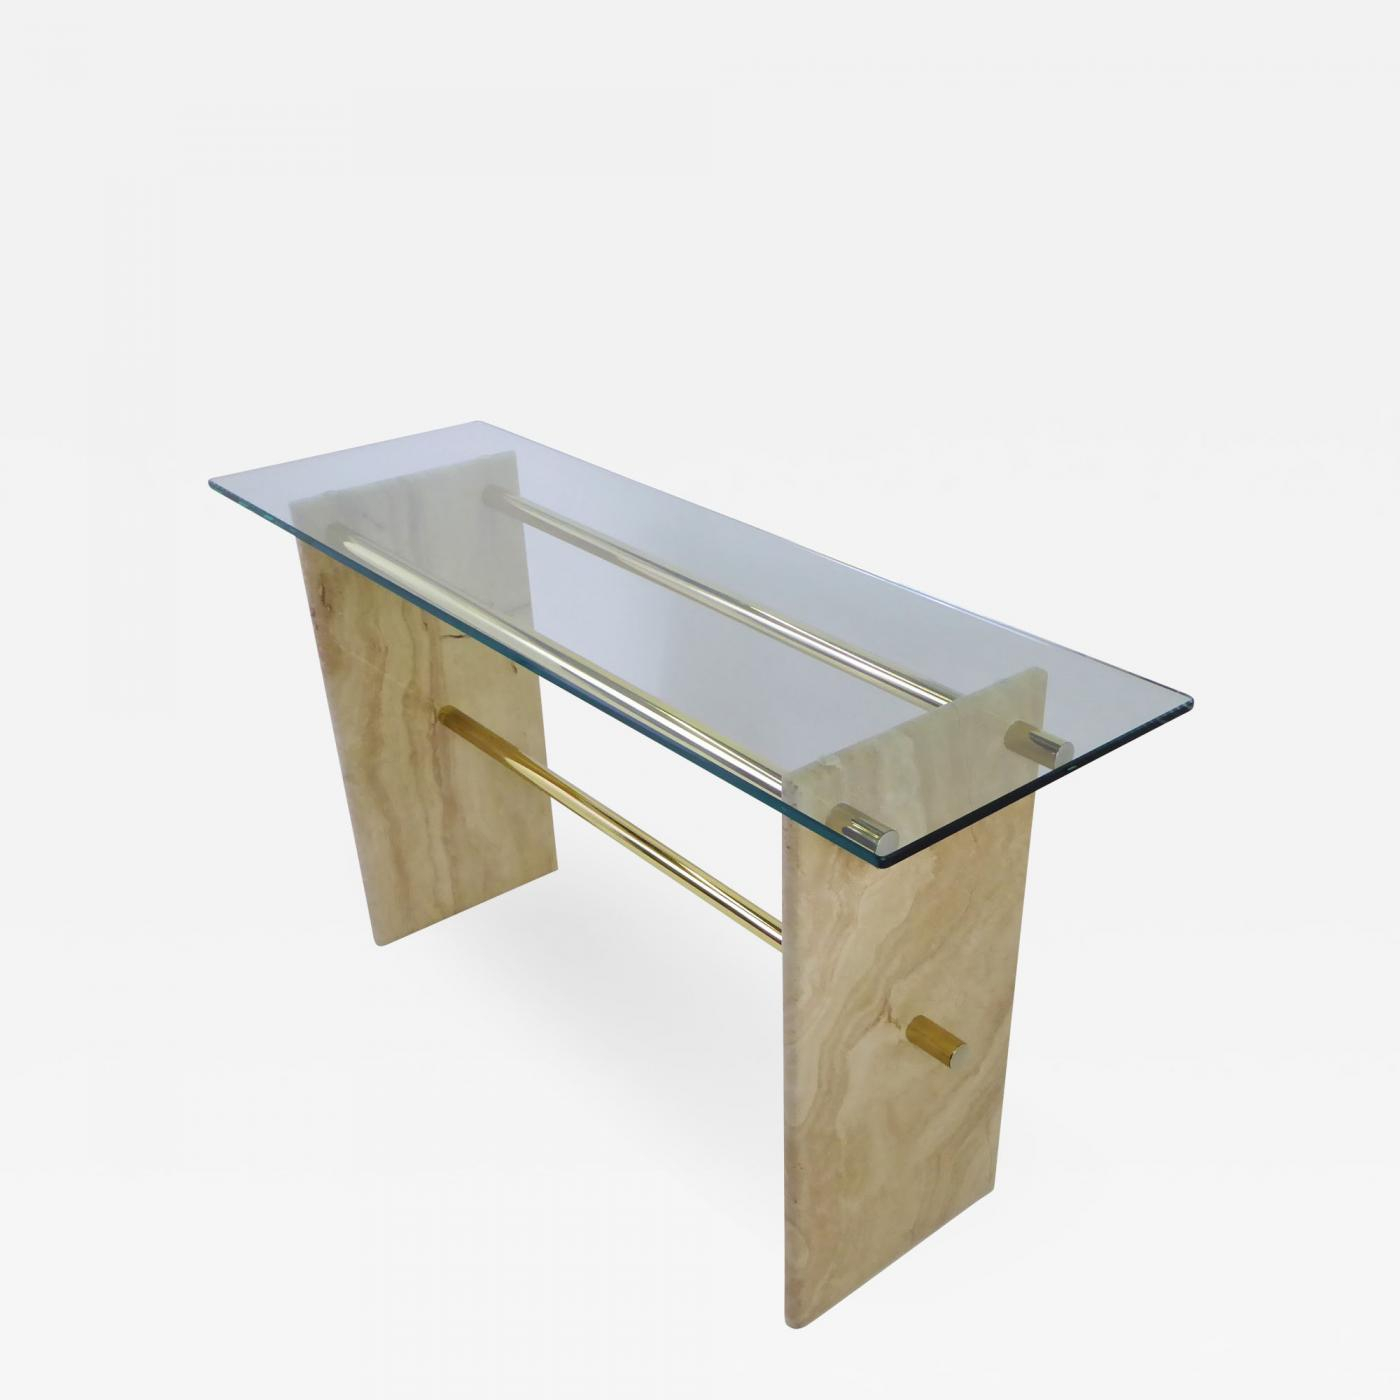 Travertine Sofa Table – Home And Textiles intended for Parsons Travertine Top & Stainless Steel Base 48X16 Console Tables (Image 29 of 30)